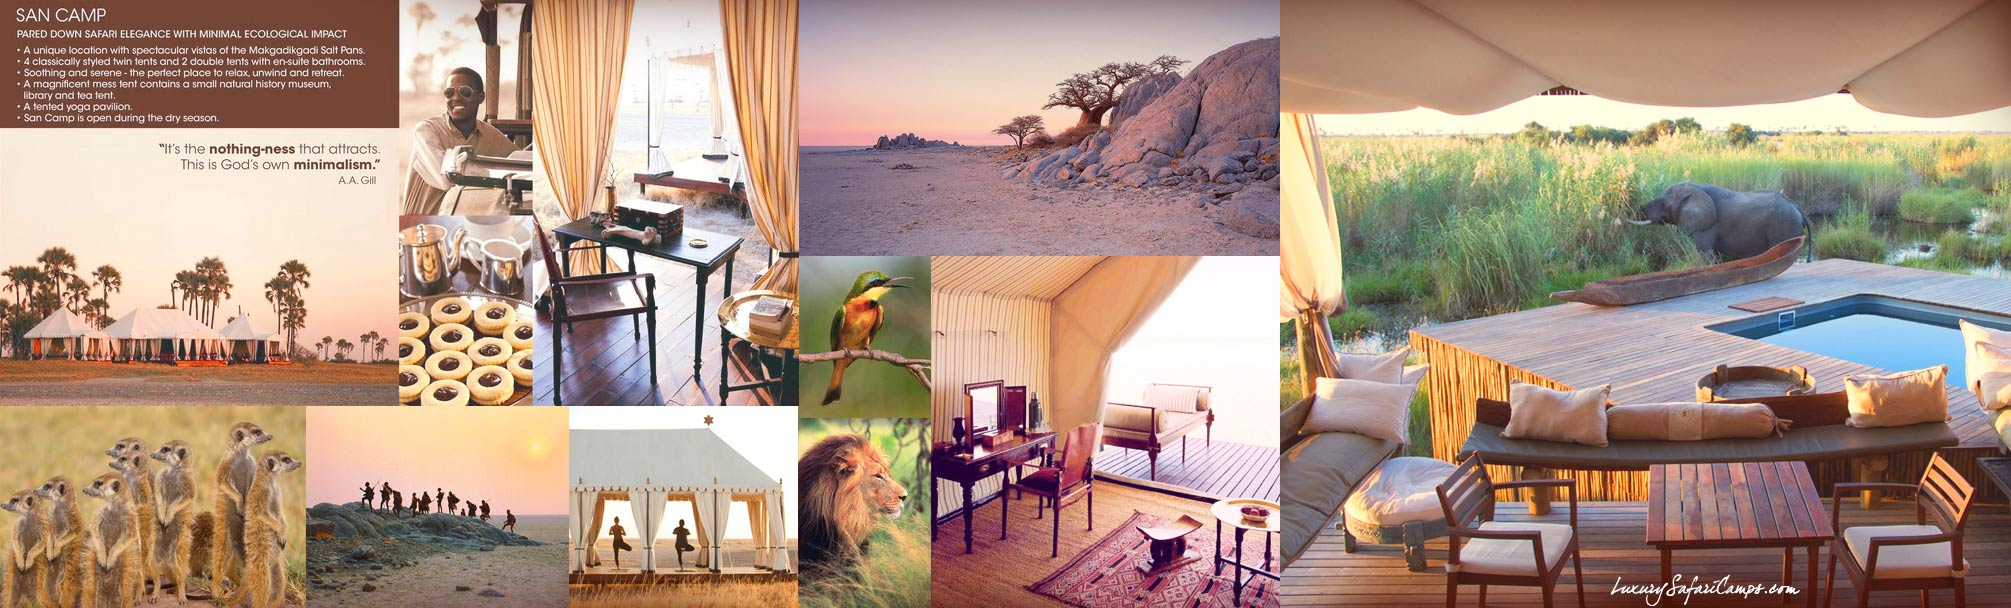 Private Safari with Guided Safaris® LuxurySafariCamps.com